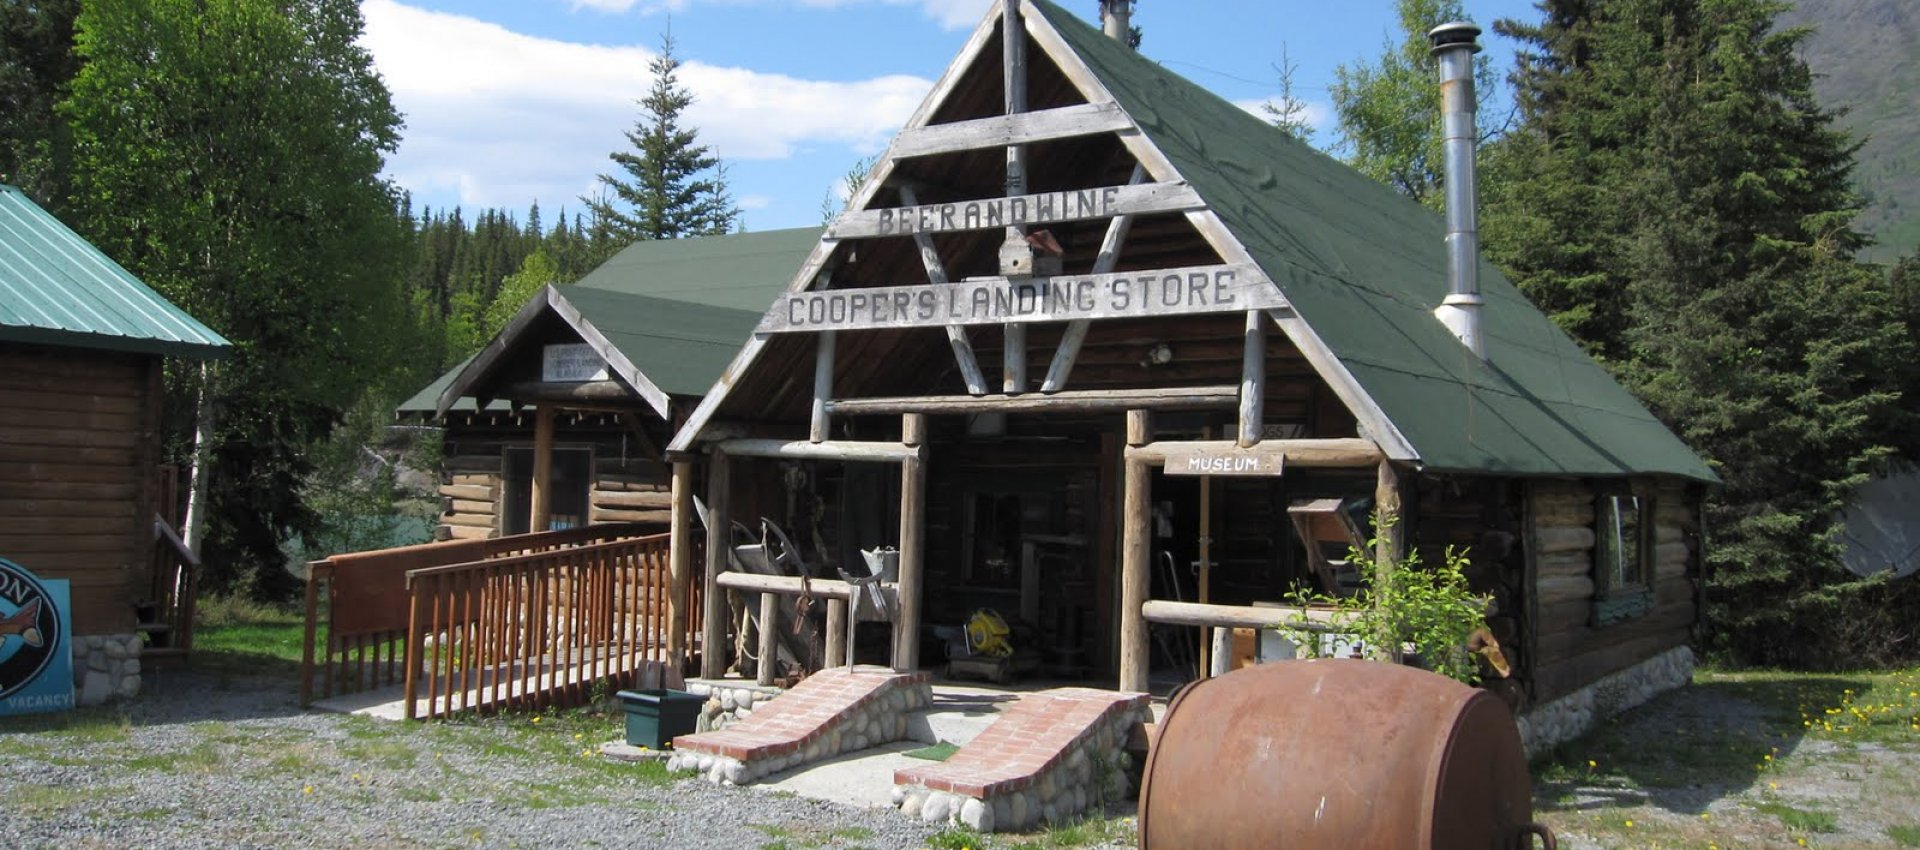 Cooper Landing Historical Society And Museum | Kenai Peninsula Tourism  Marketing Council